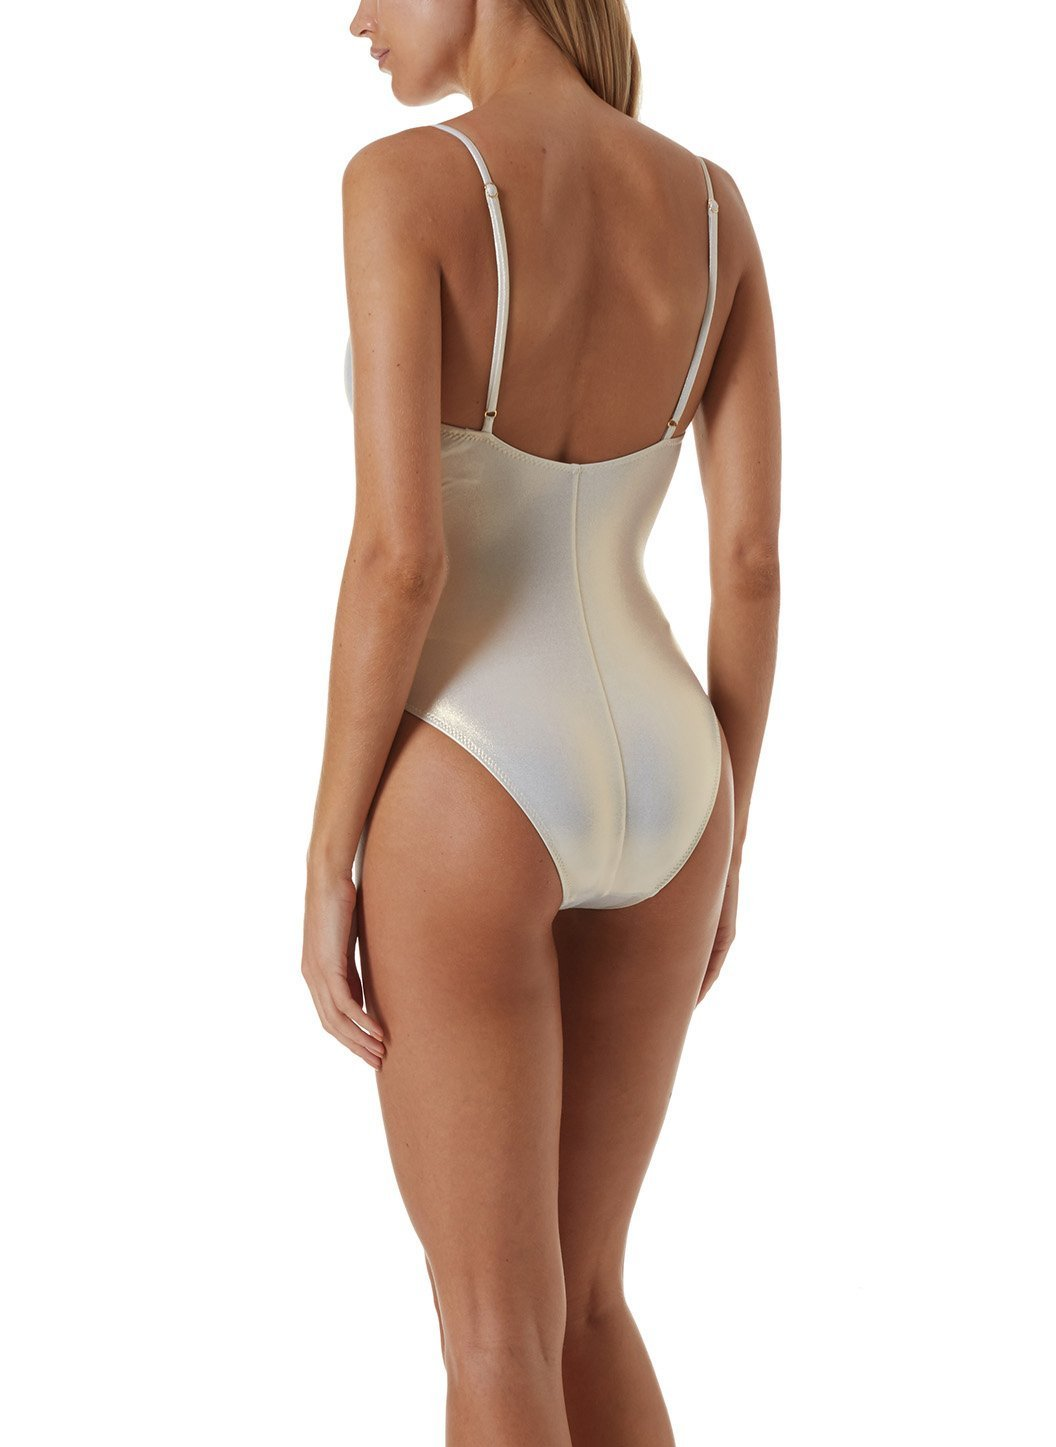 bora bora gold swimsuit